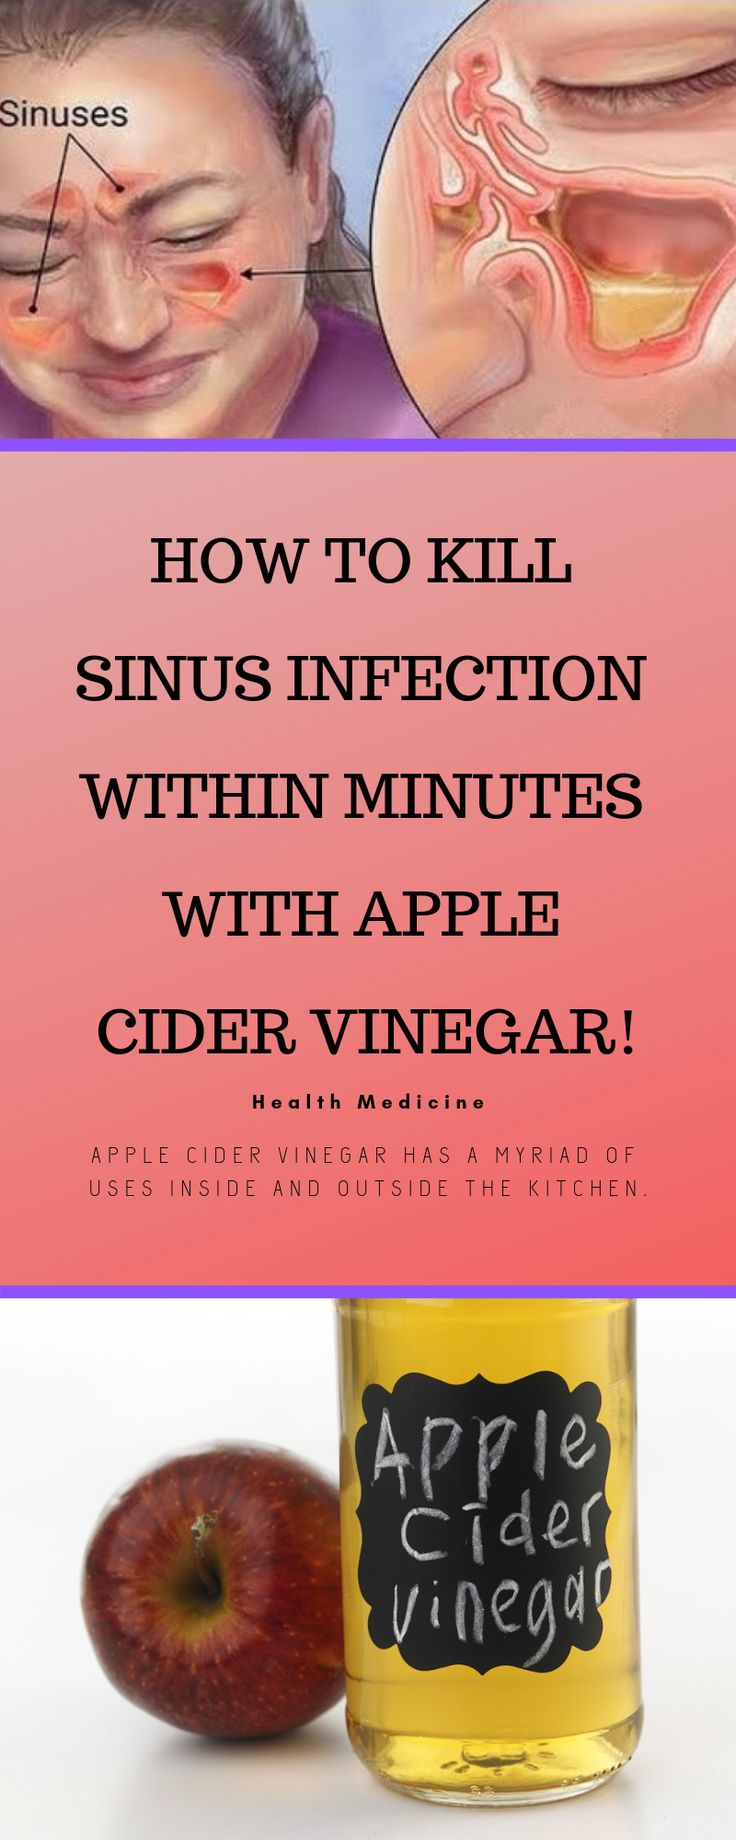 HOW TO KILL SINUS INFECTION WITHIN MINUTES WITH APPLE CIDER VINEGAR! 1